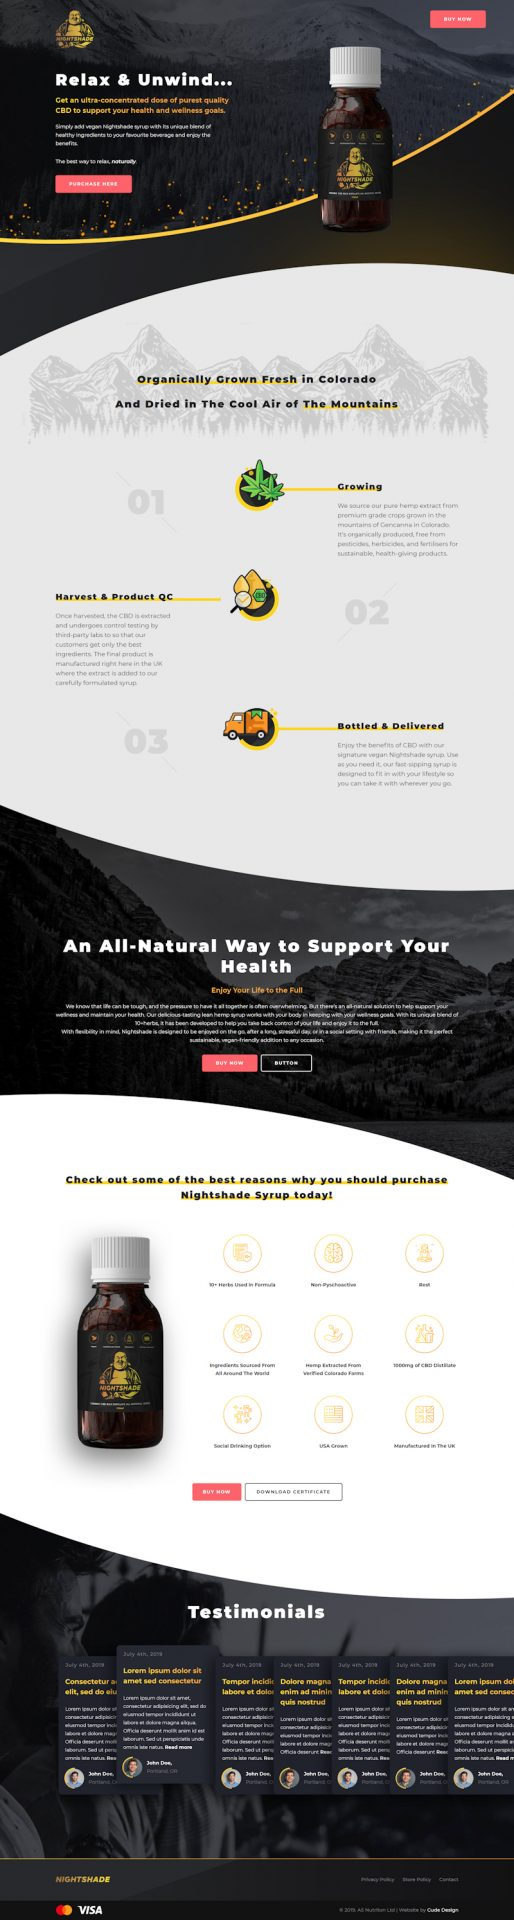 CBD Website Design - Nightshade